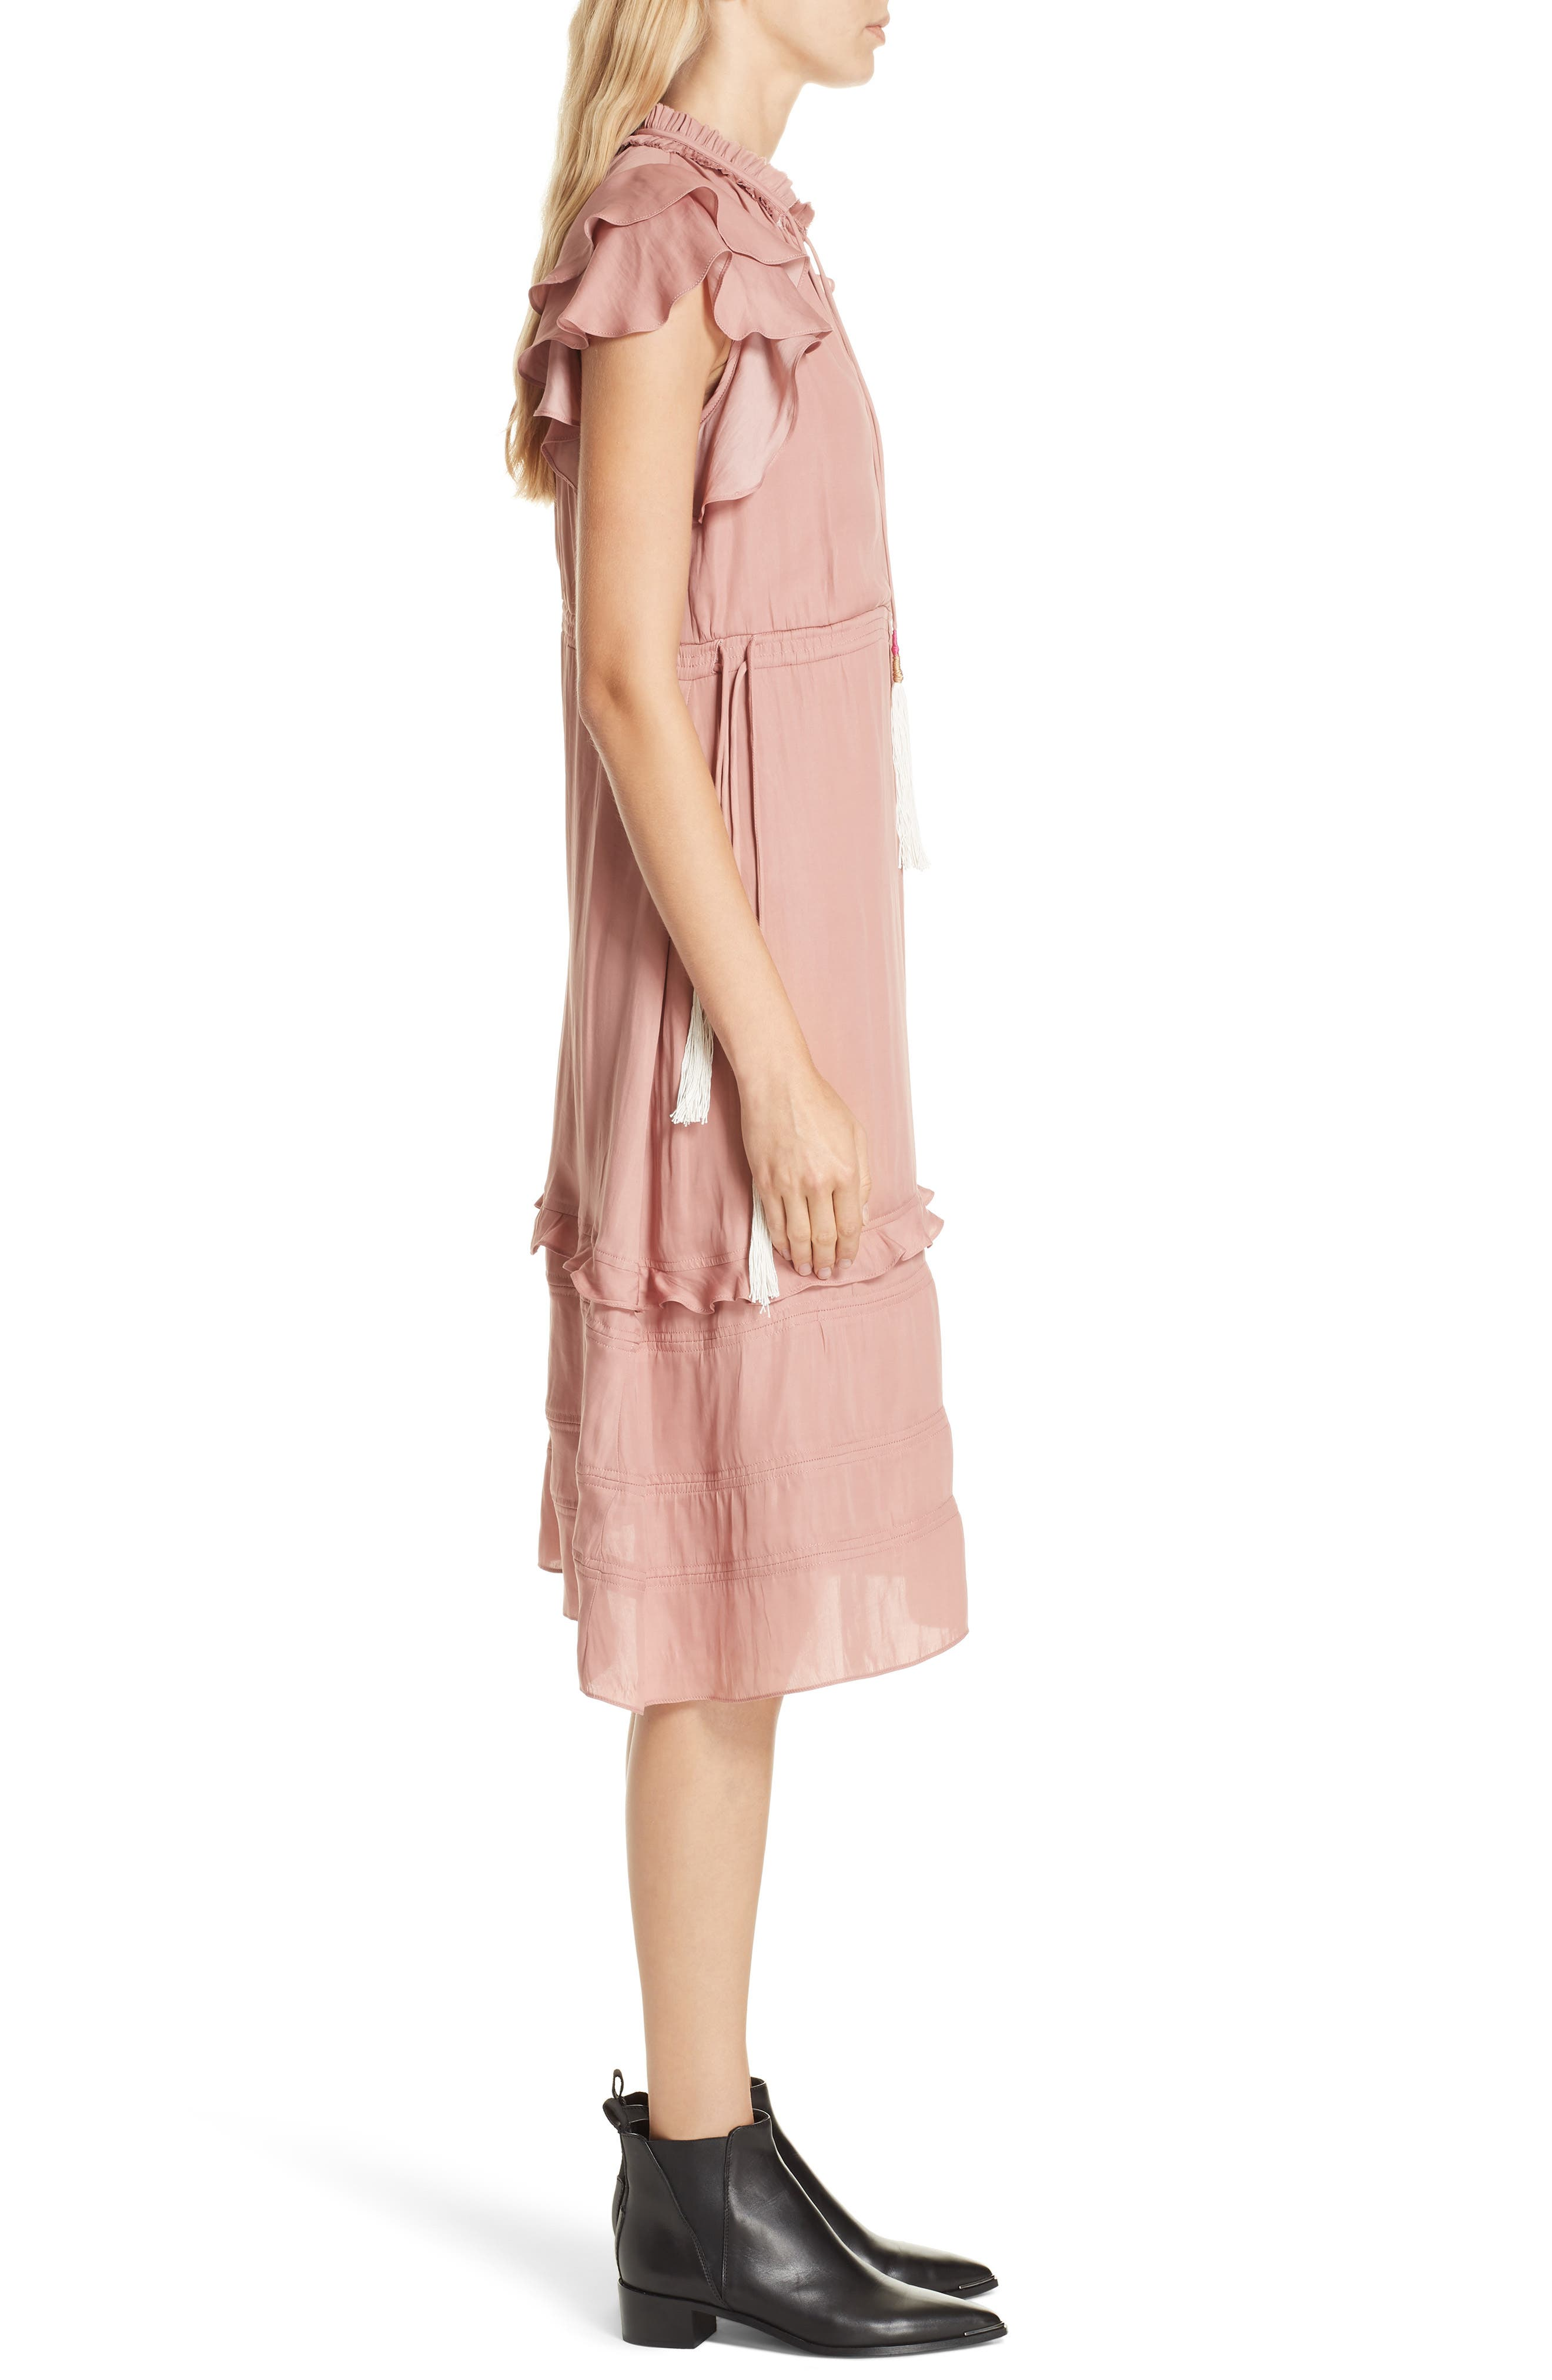 Tassel Tie Midi Dress,                             Alternate thumbnail 3, color,                             ROSE WOOD